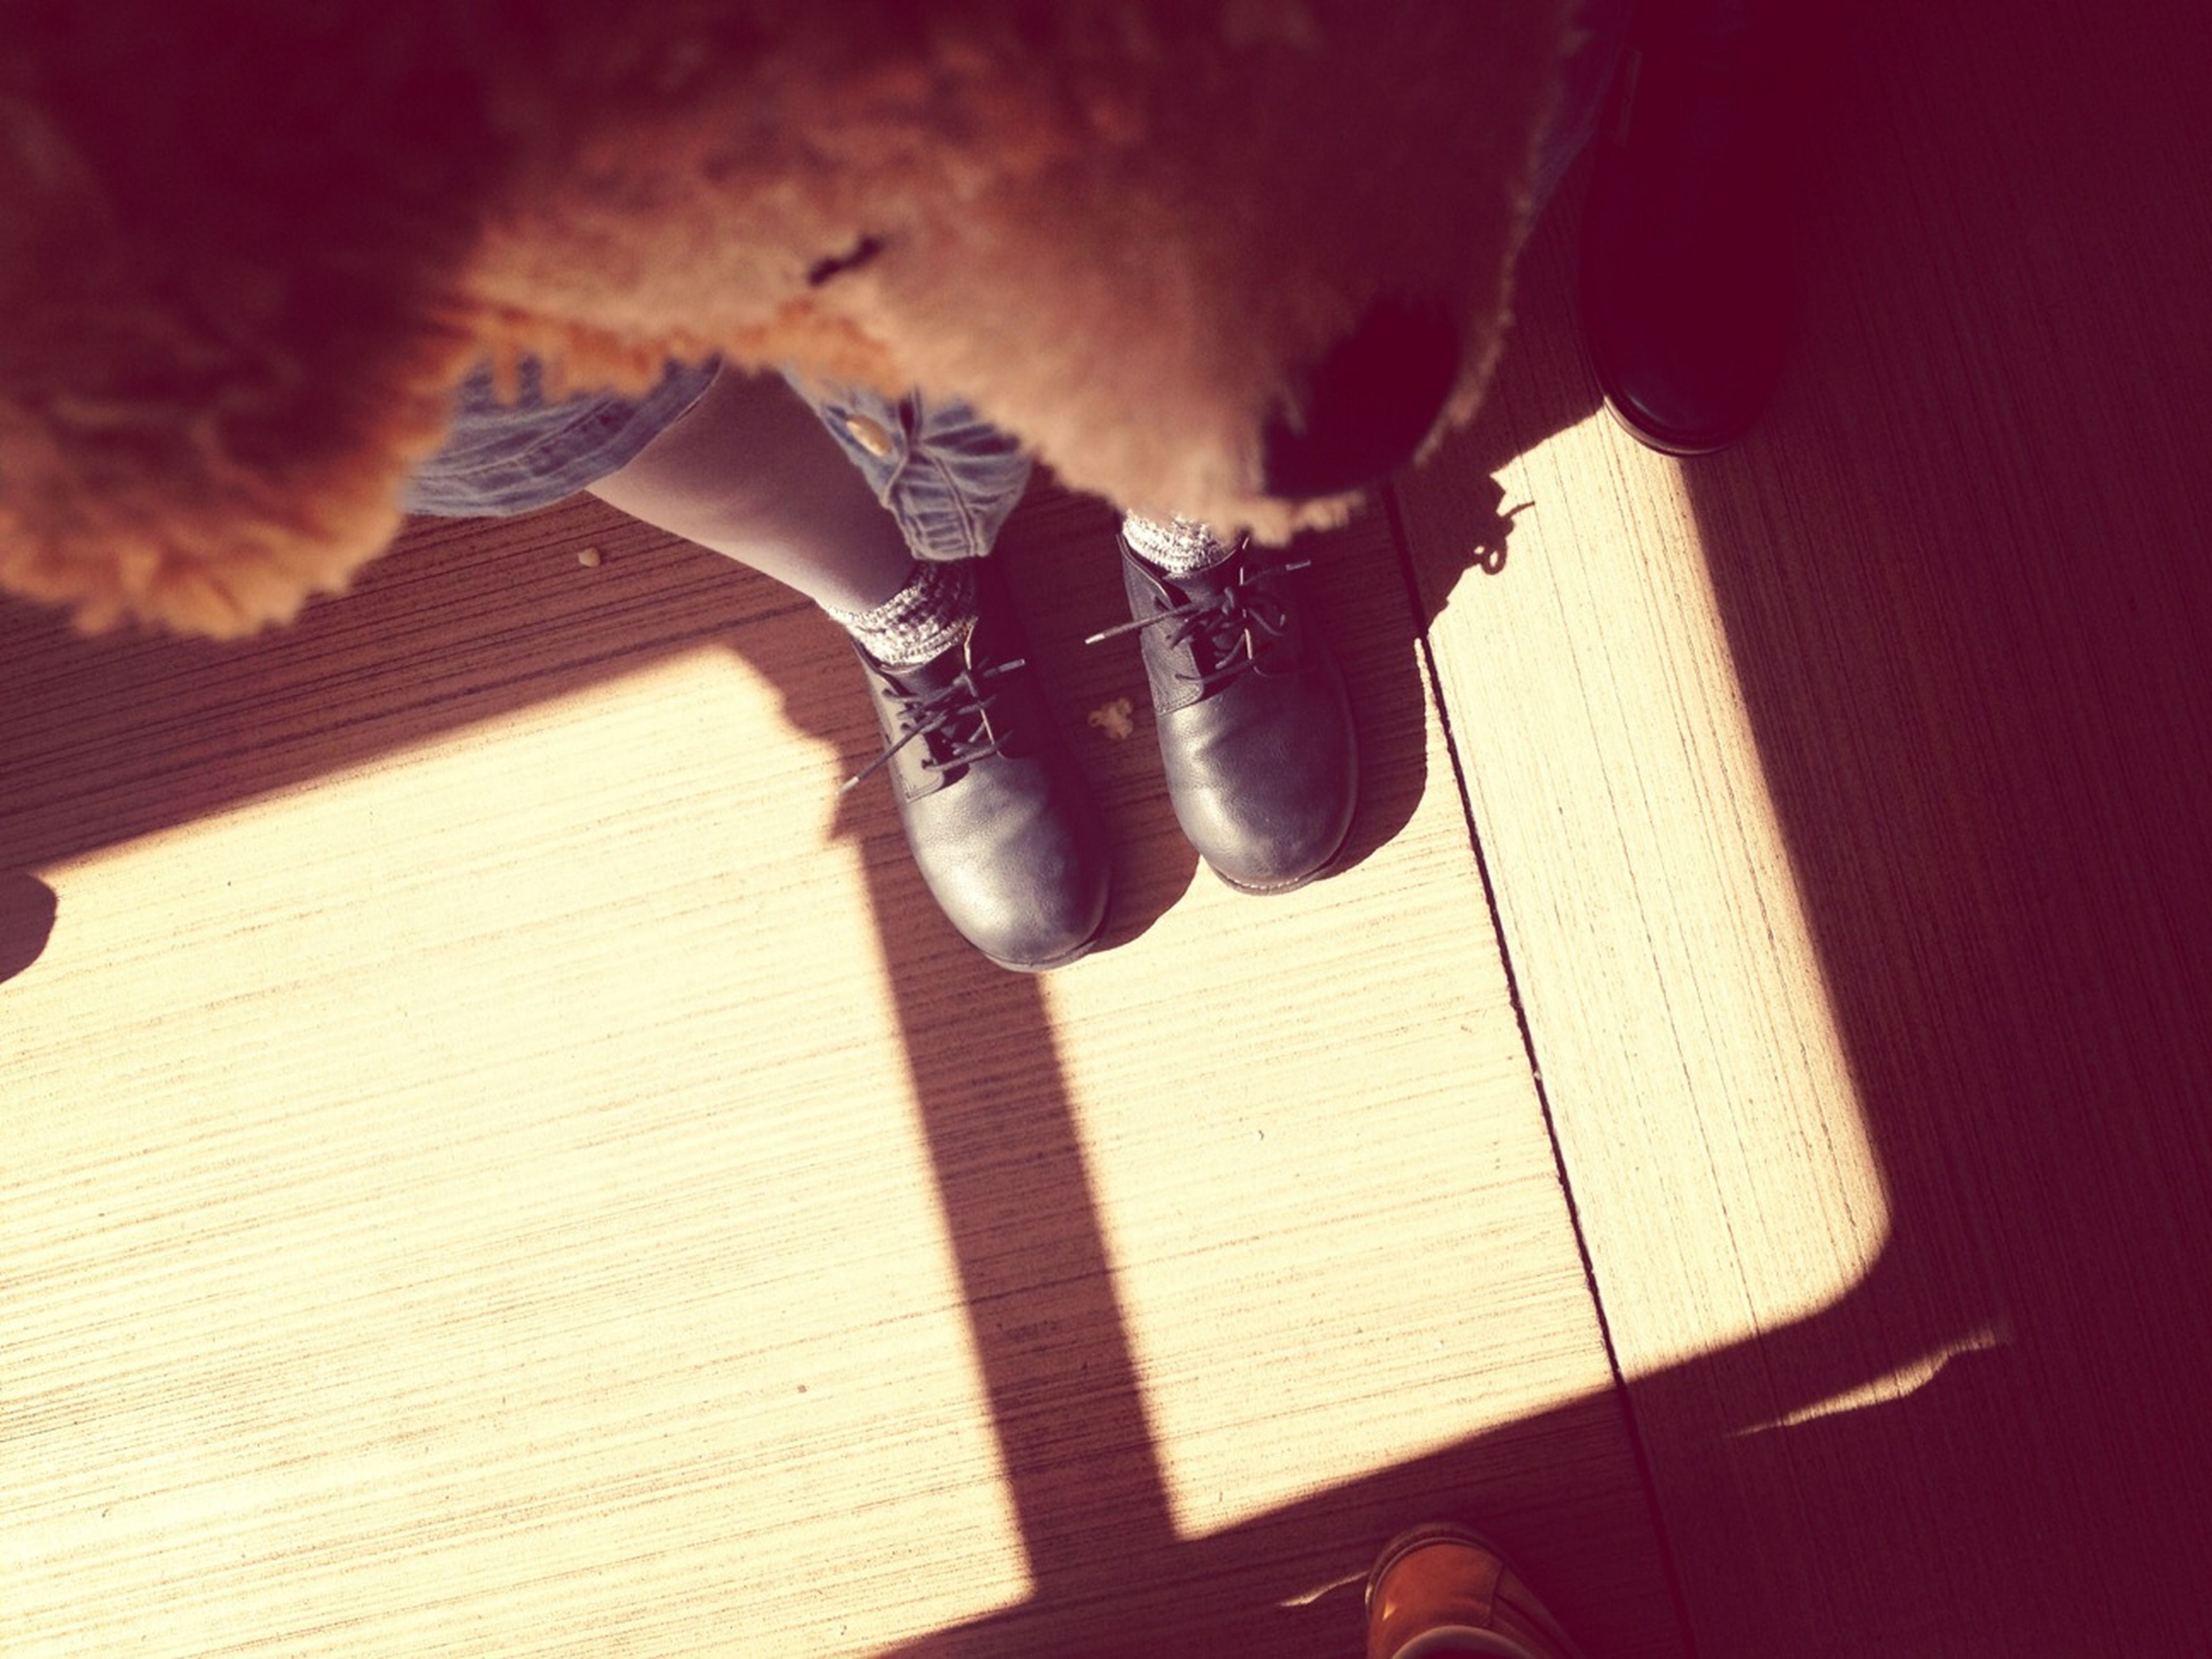 indoors, high angle view, one animal, animal themes, shadow, shoe, low section, sunlight, domestic animals, pets, sitting, wood - material, home interior, person, part of, black color, footwear